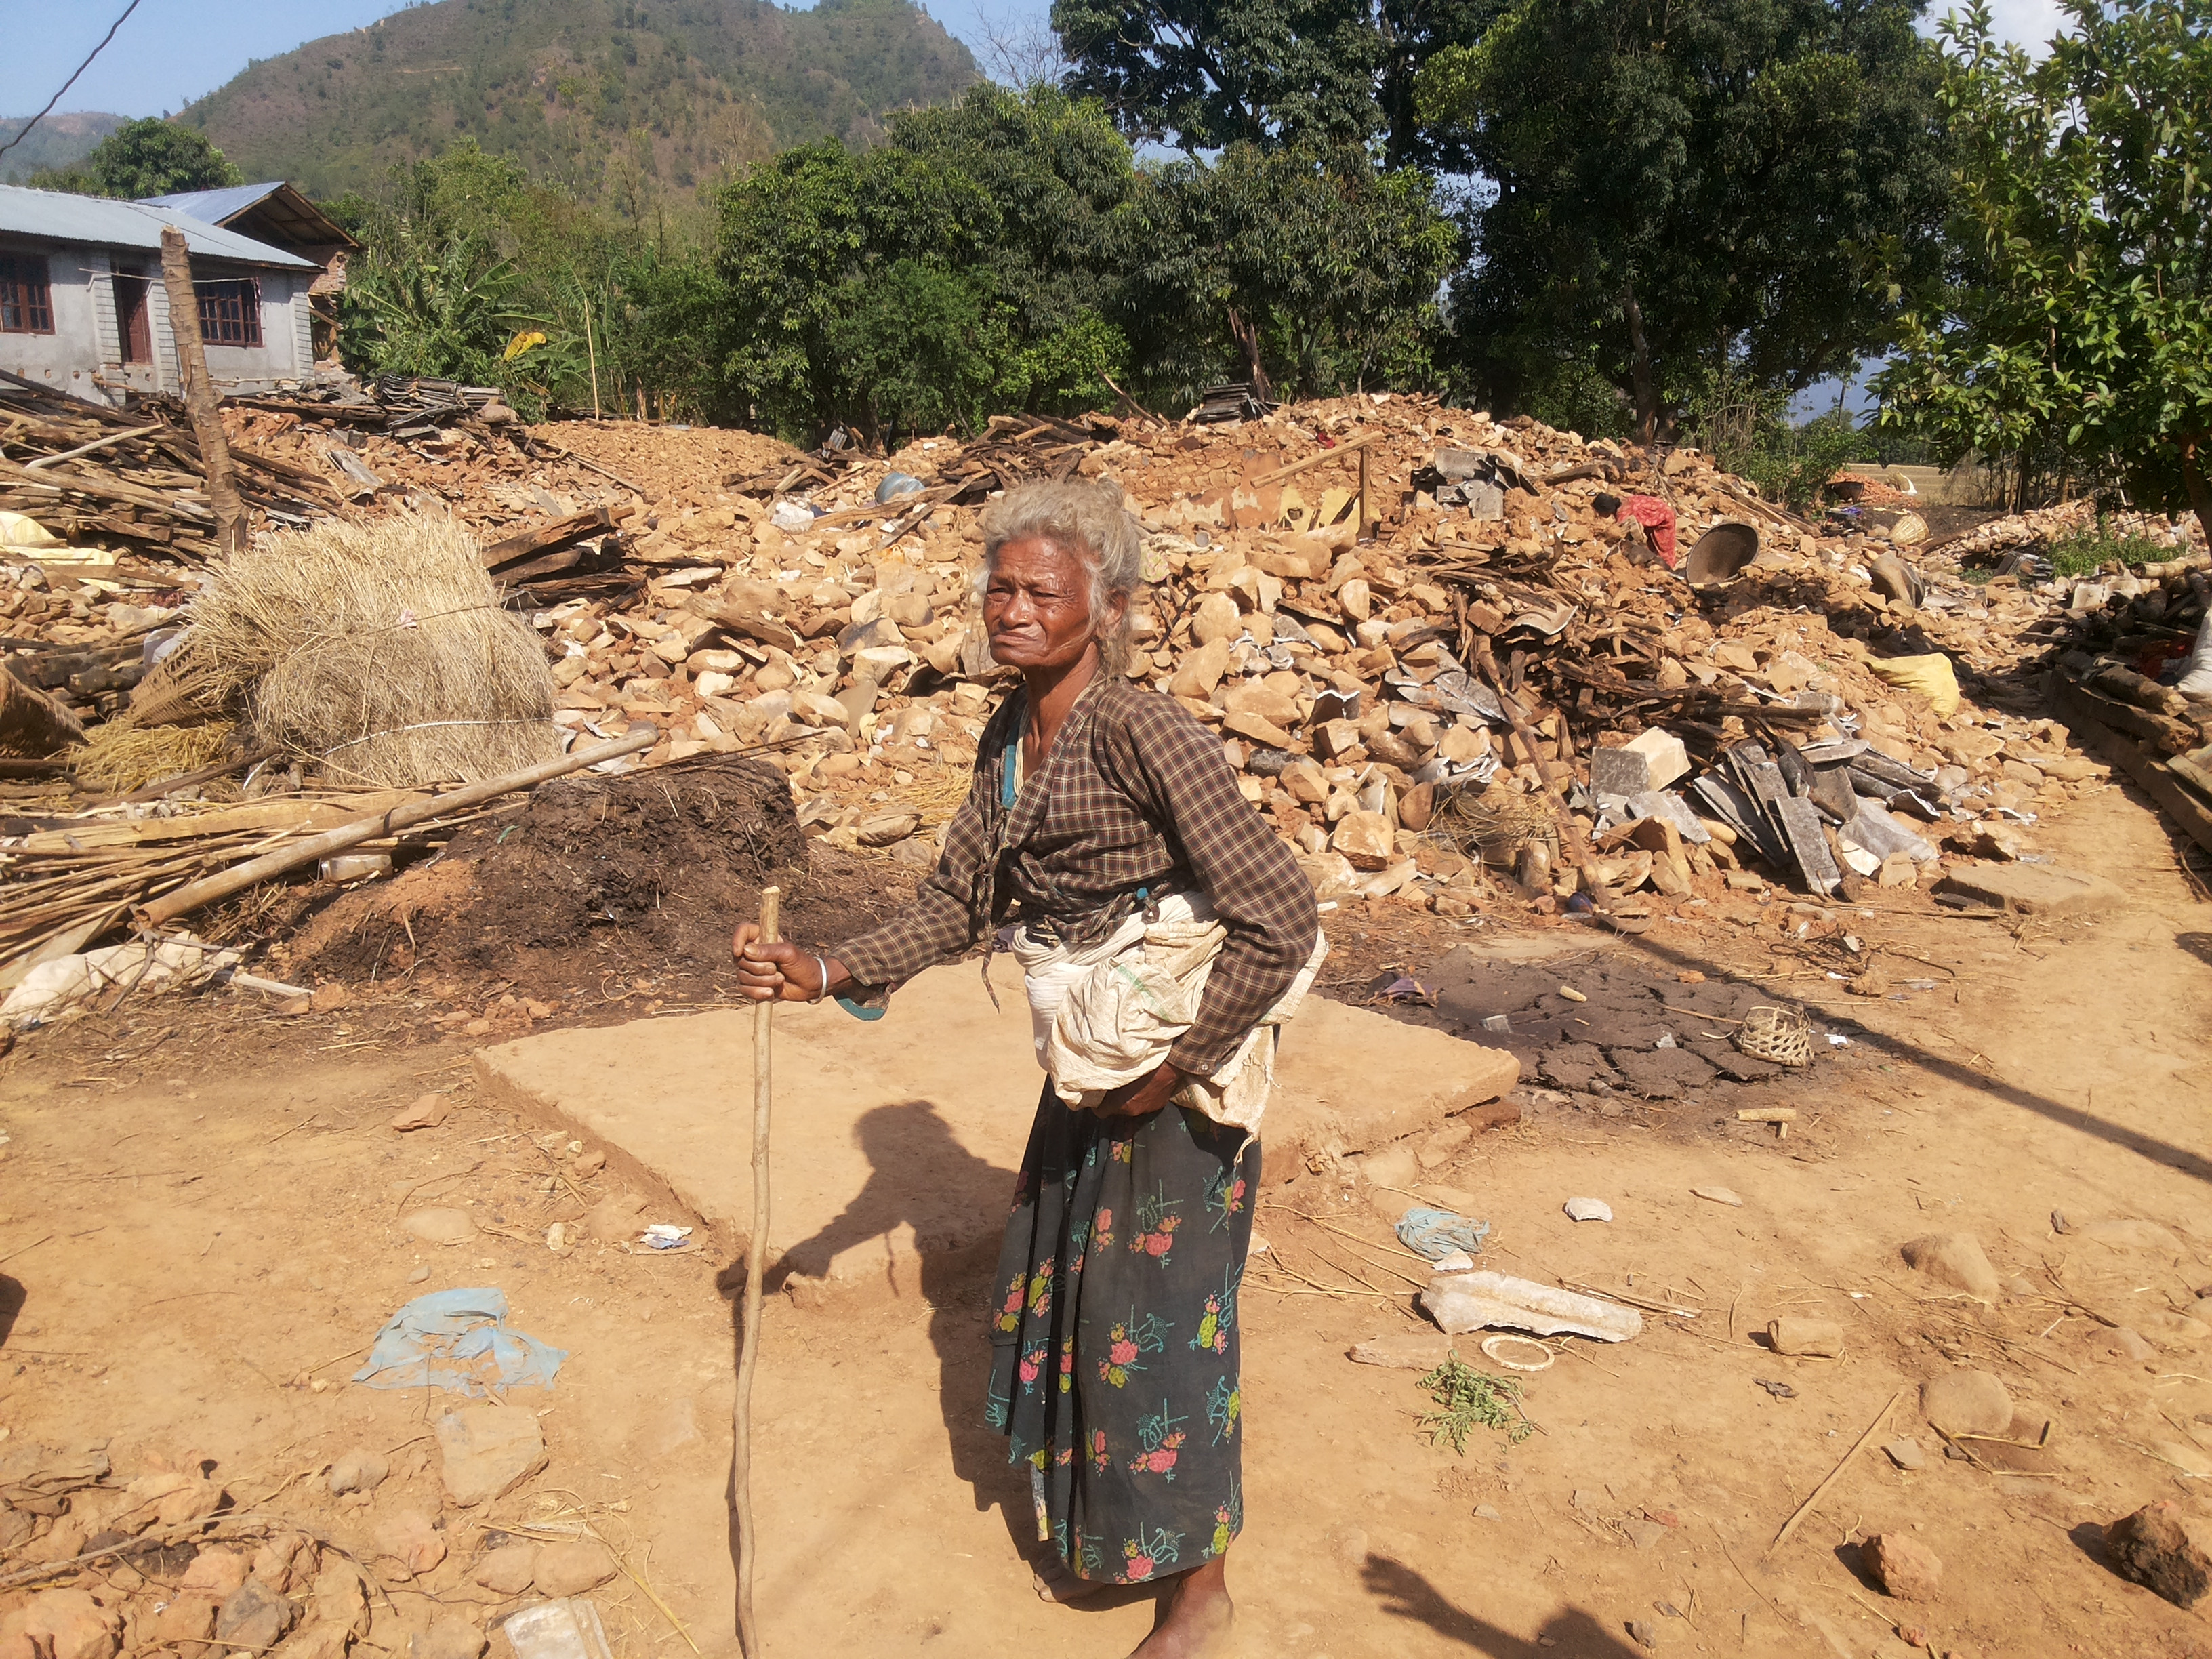 Padma lost everything to the Nepal earthquakes